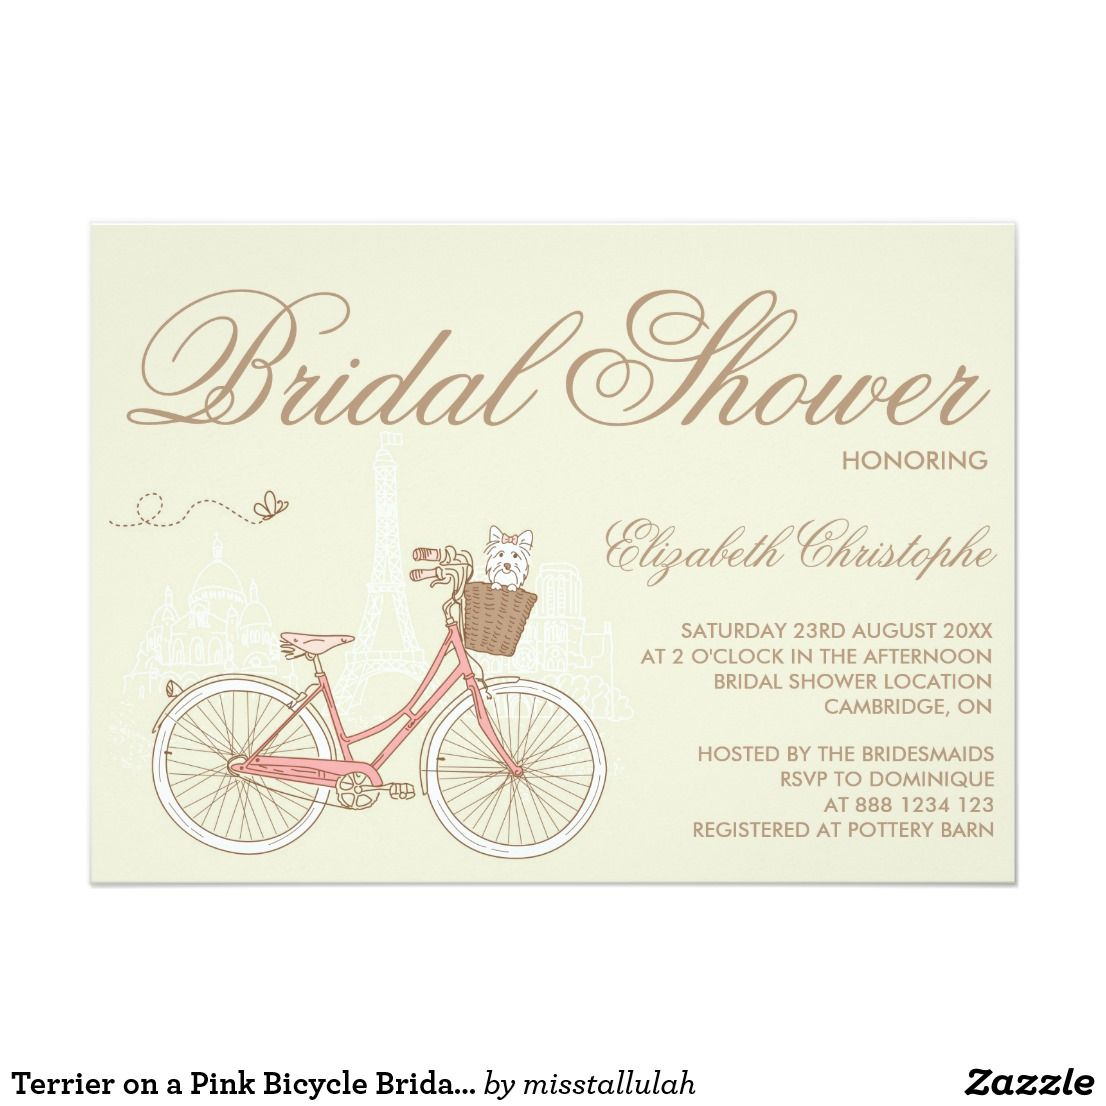 Terrier on a pink bicycle bridal shower invitation shower sweet terrier on a pink bicycle bridal shower invitation from zazzle filmwisefo